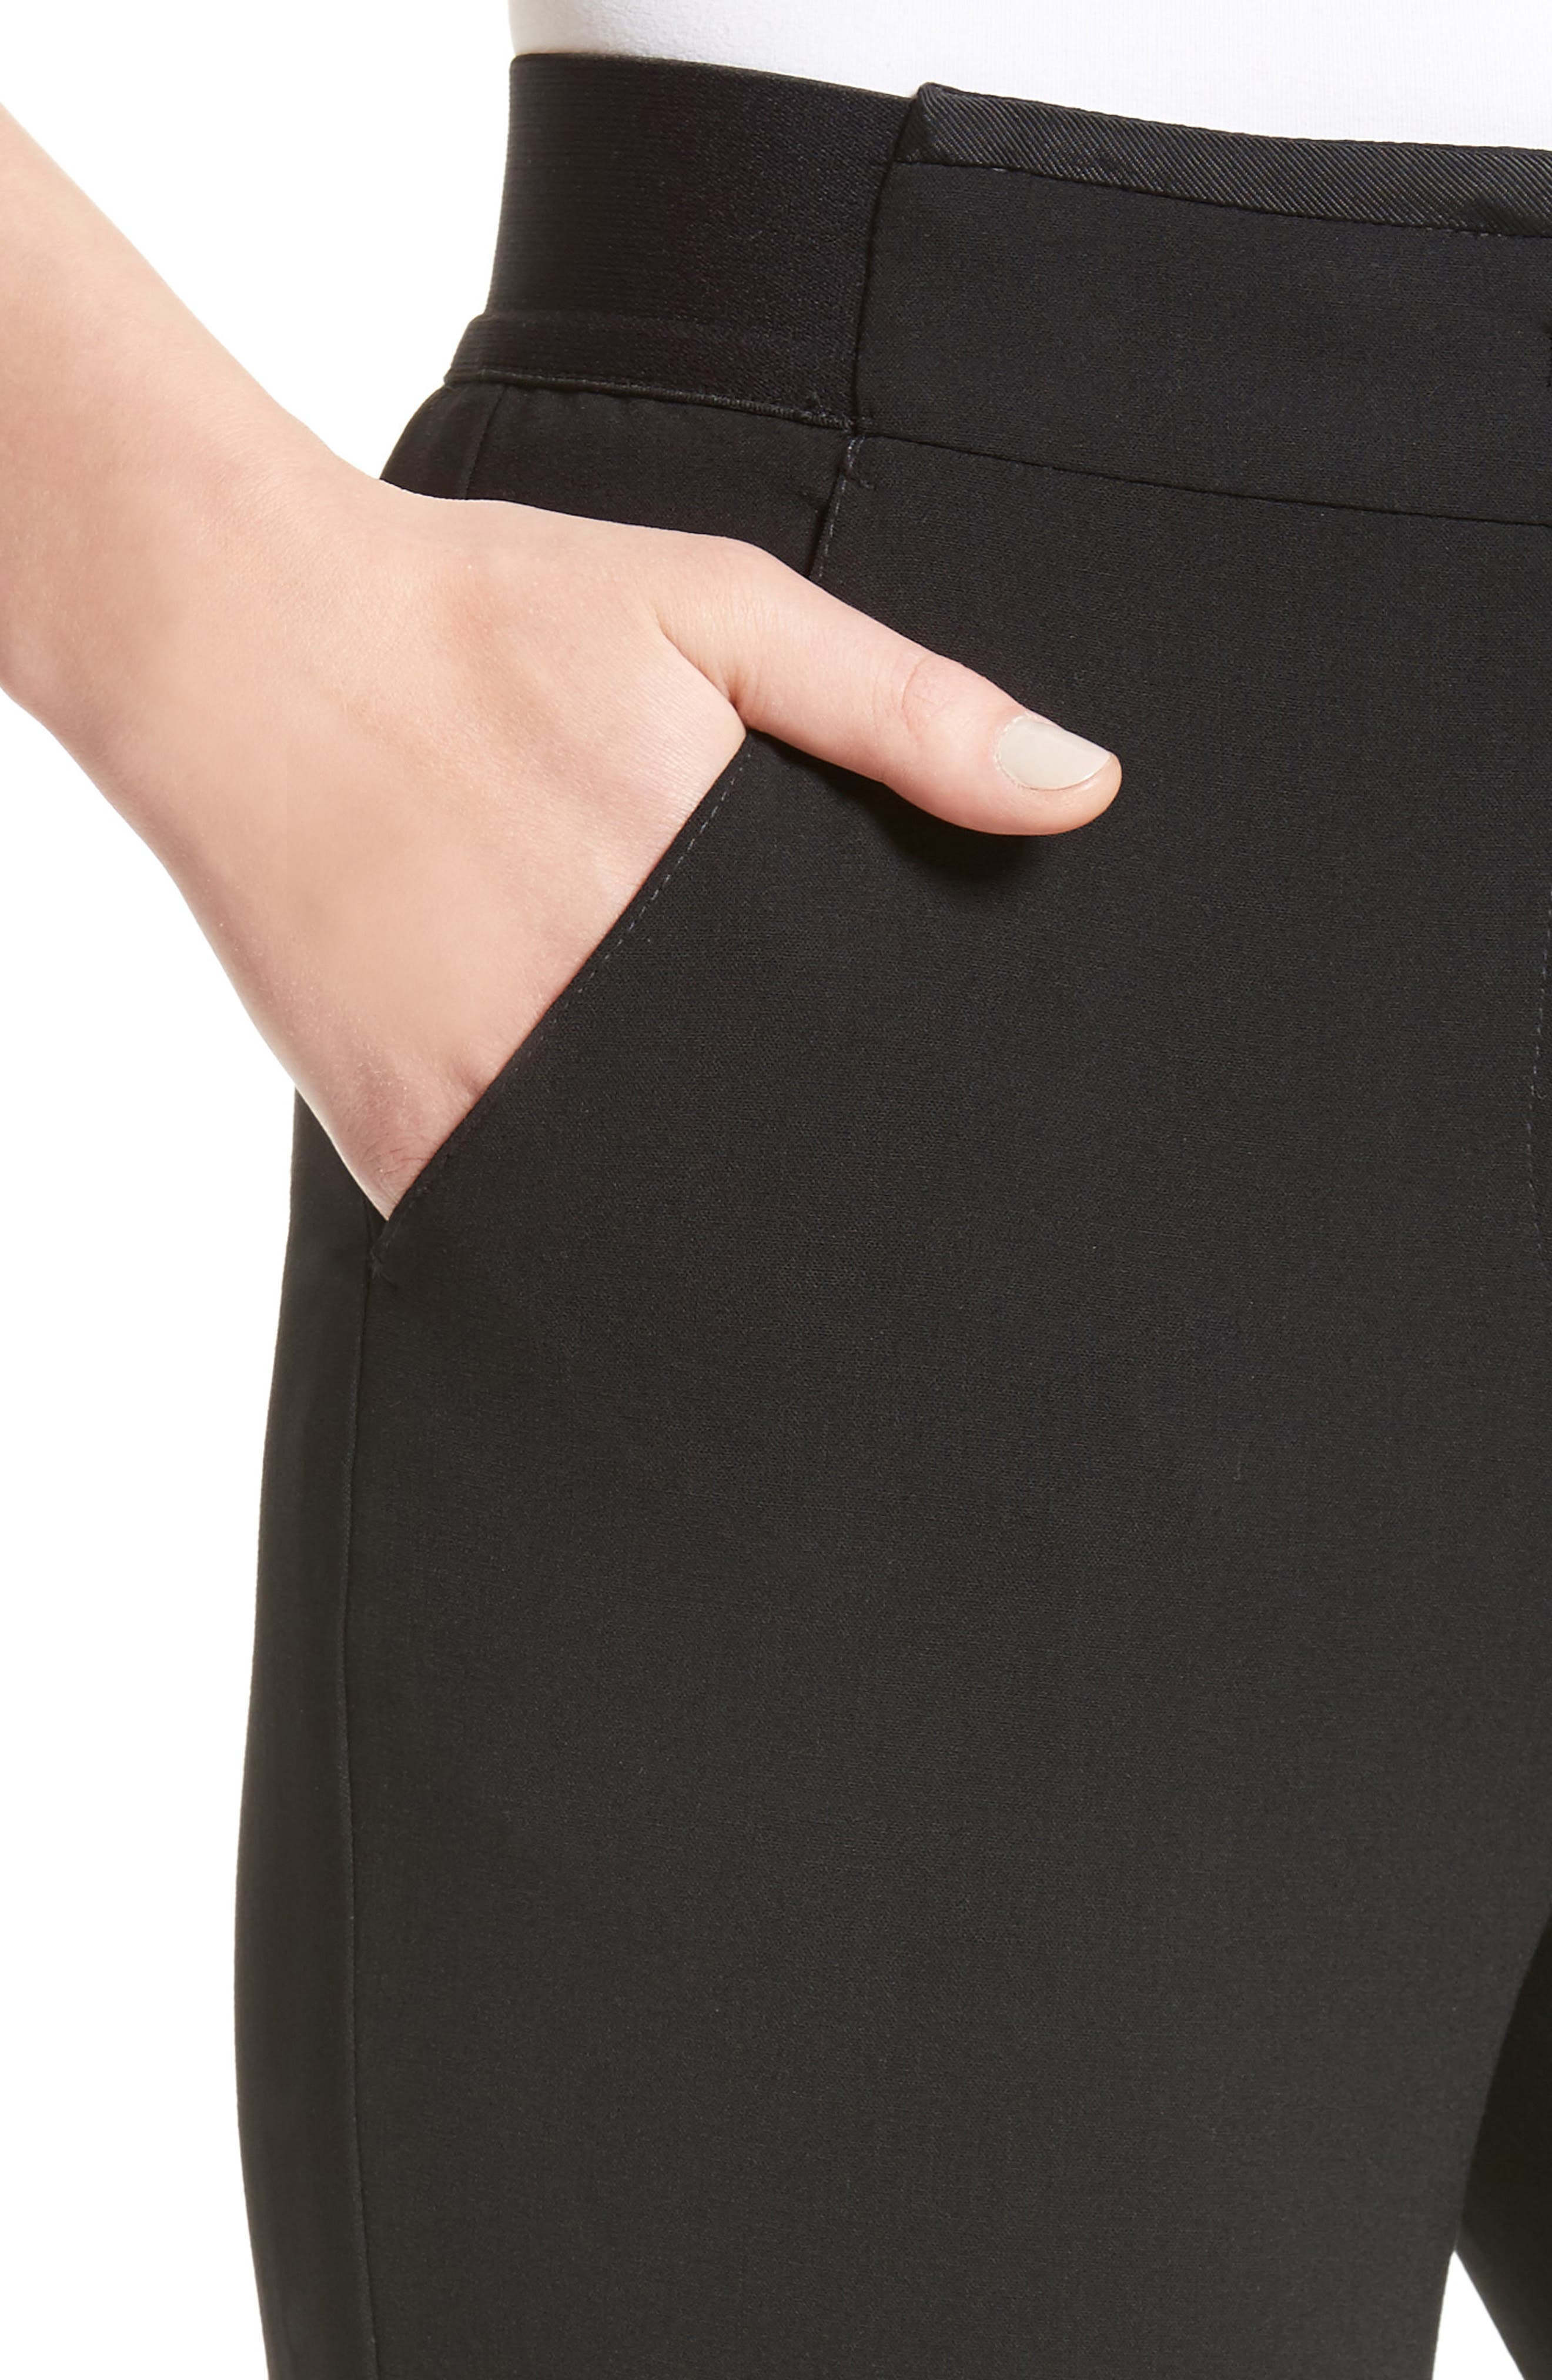 Stretch Wool Pants,                             Alternate thumbnail 4, color,                             004